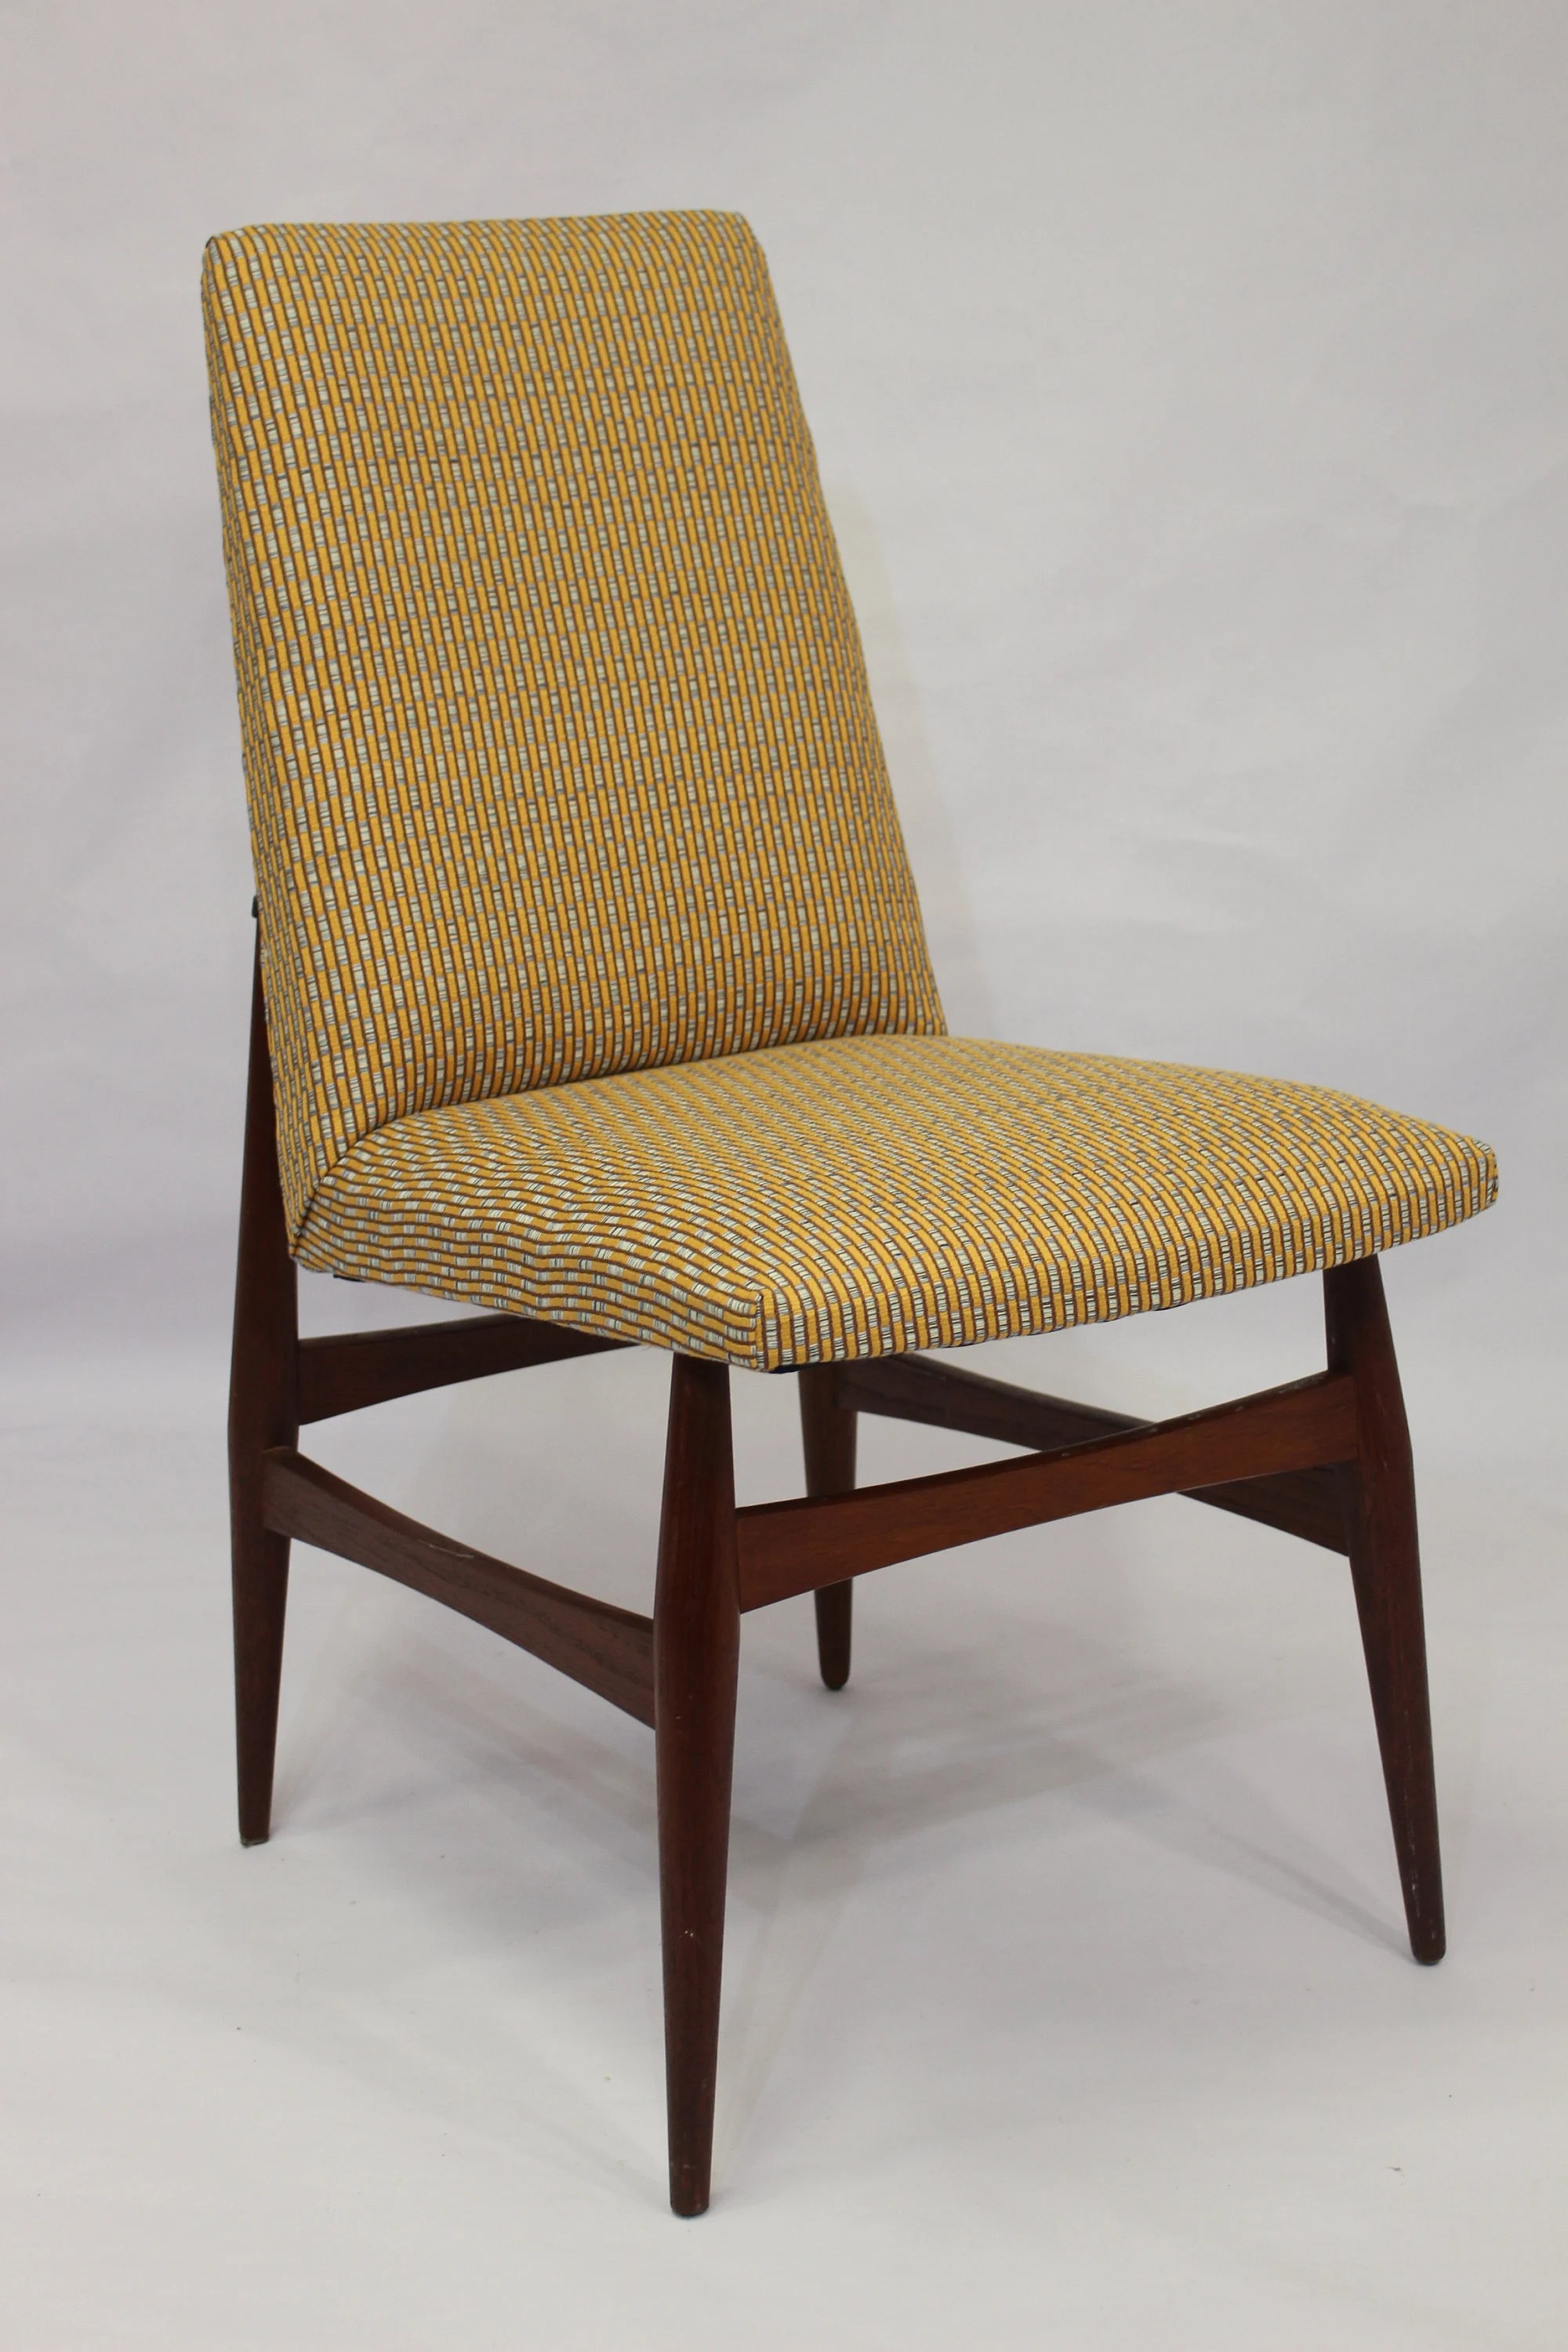 Scandinavian Chair Scandinavian Chair In Red Teak 1960 Fabric Edition Lelievre